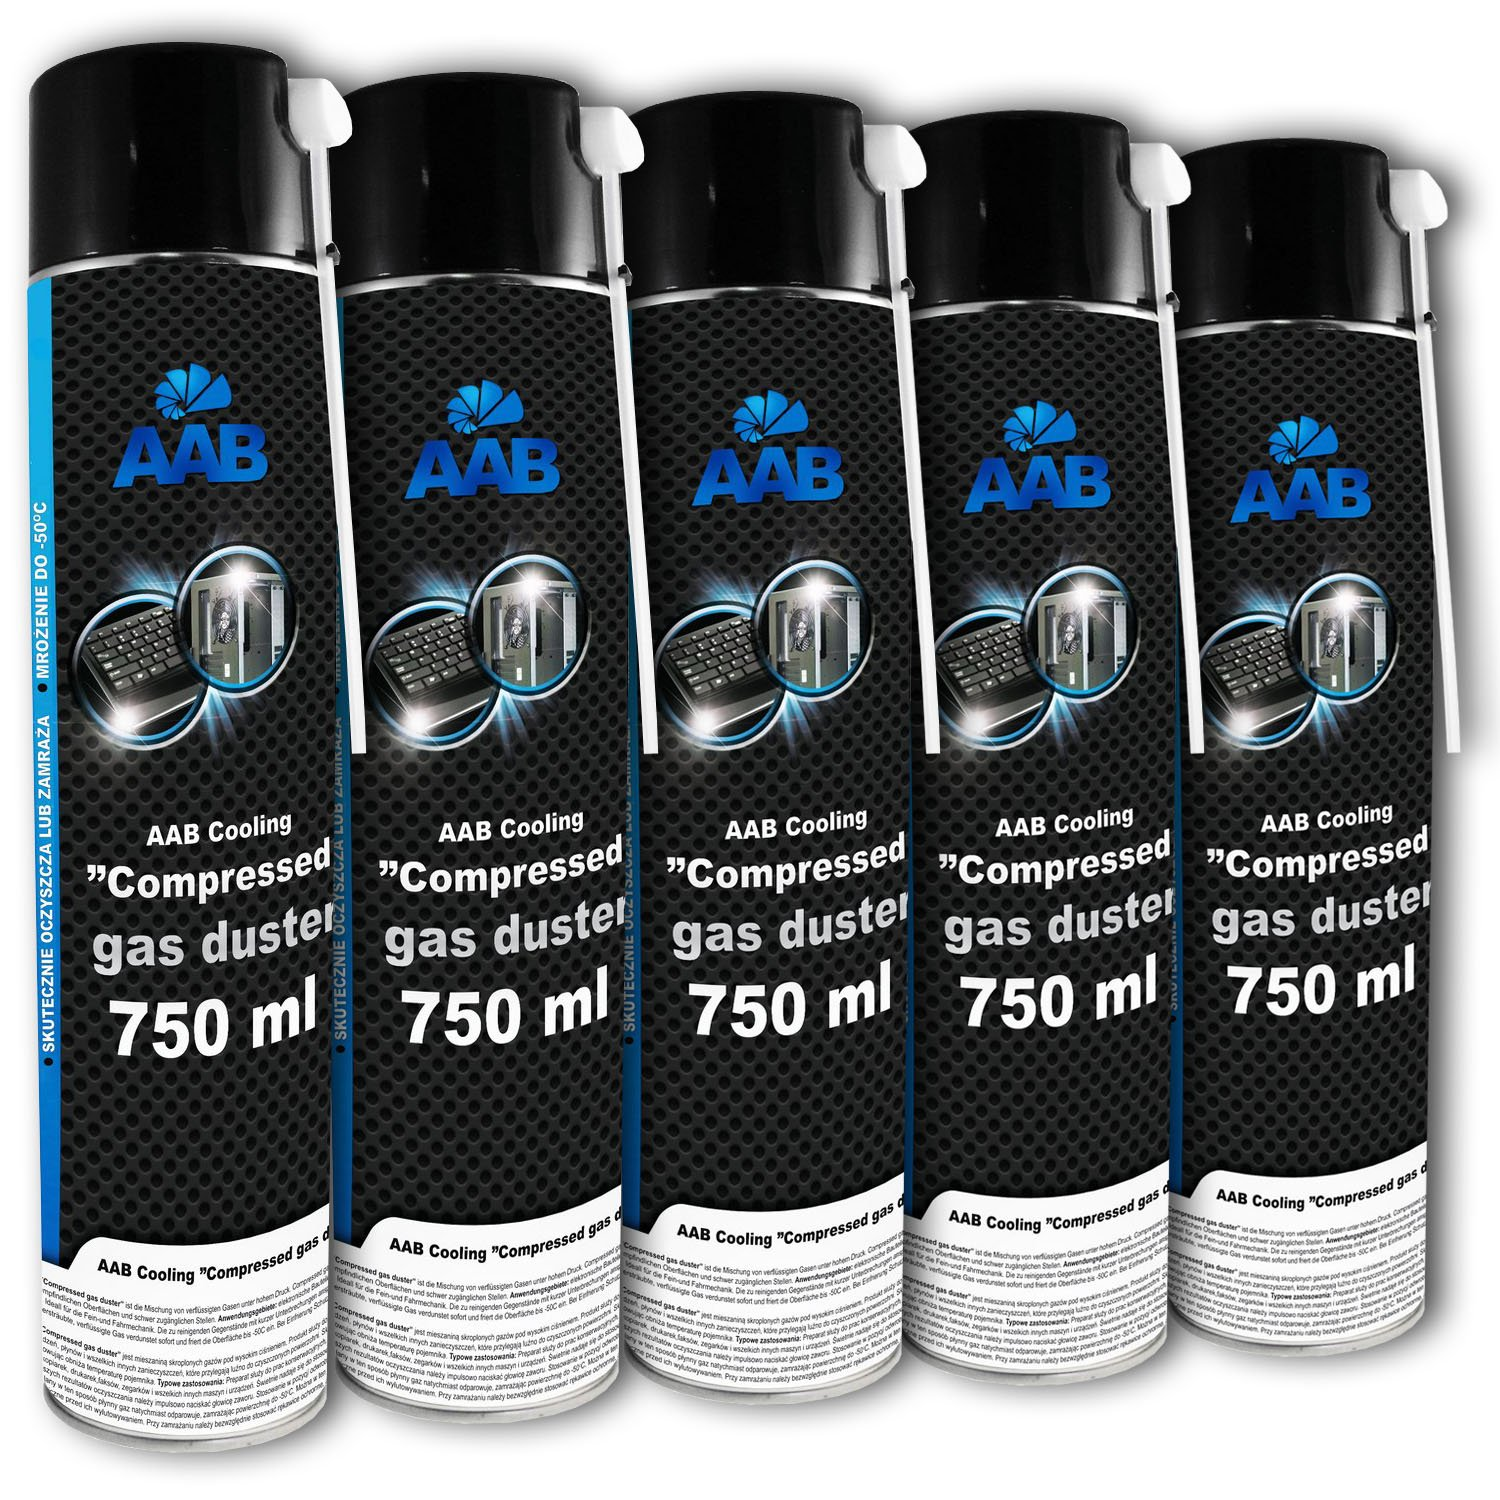 AAB Cooling Compressed Gas Duster | Aria Compressa | Spray 750ml (5x750ml)